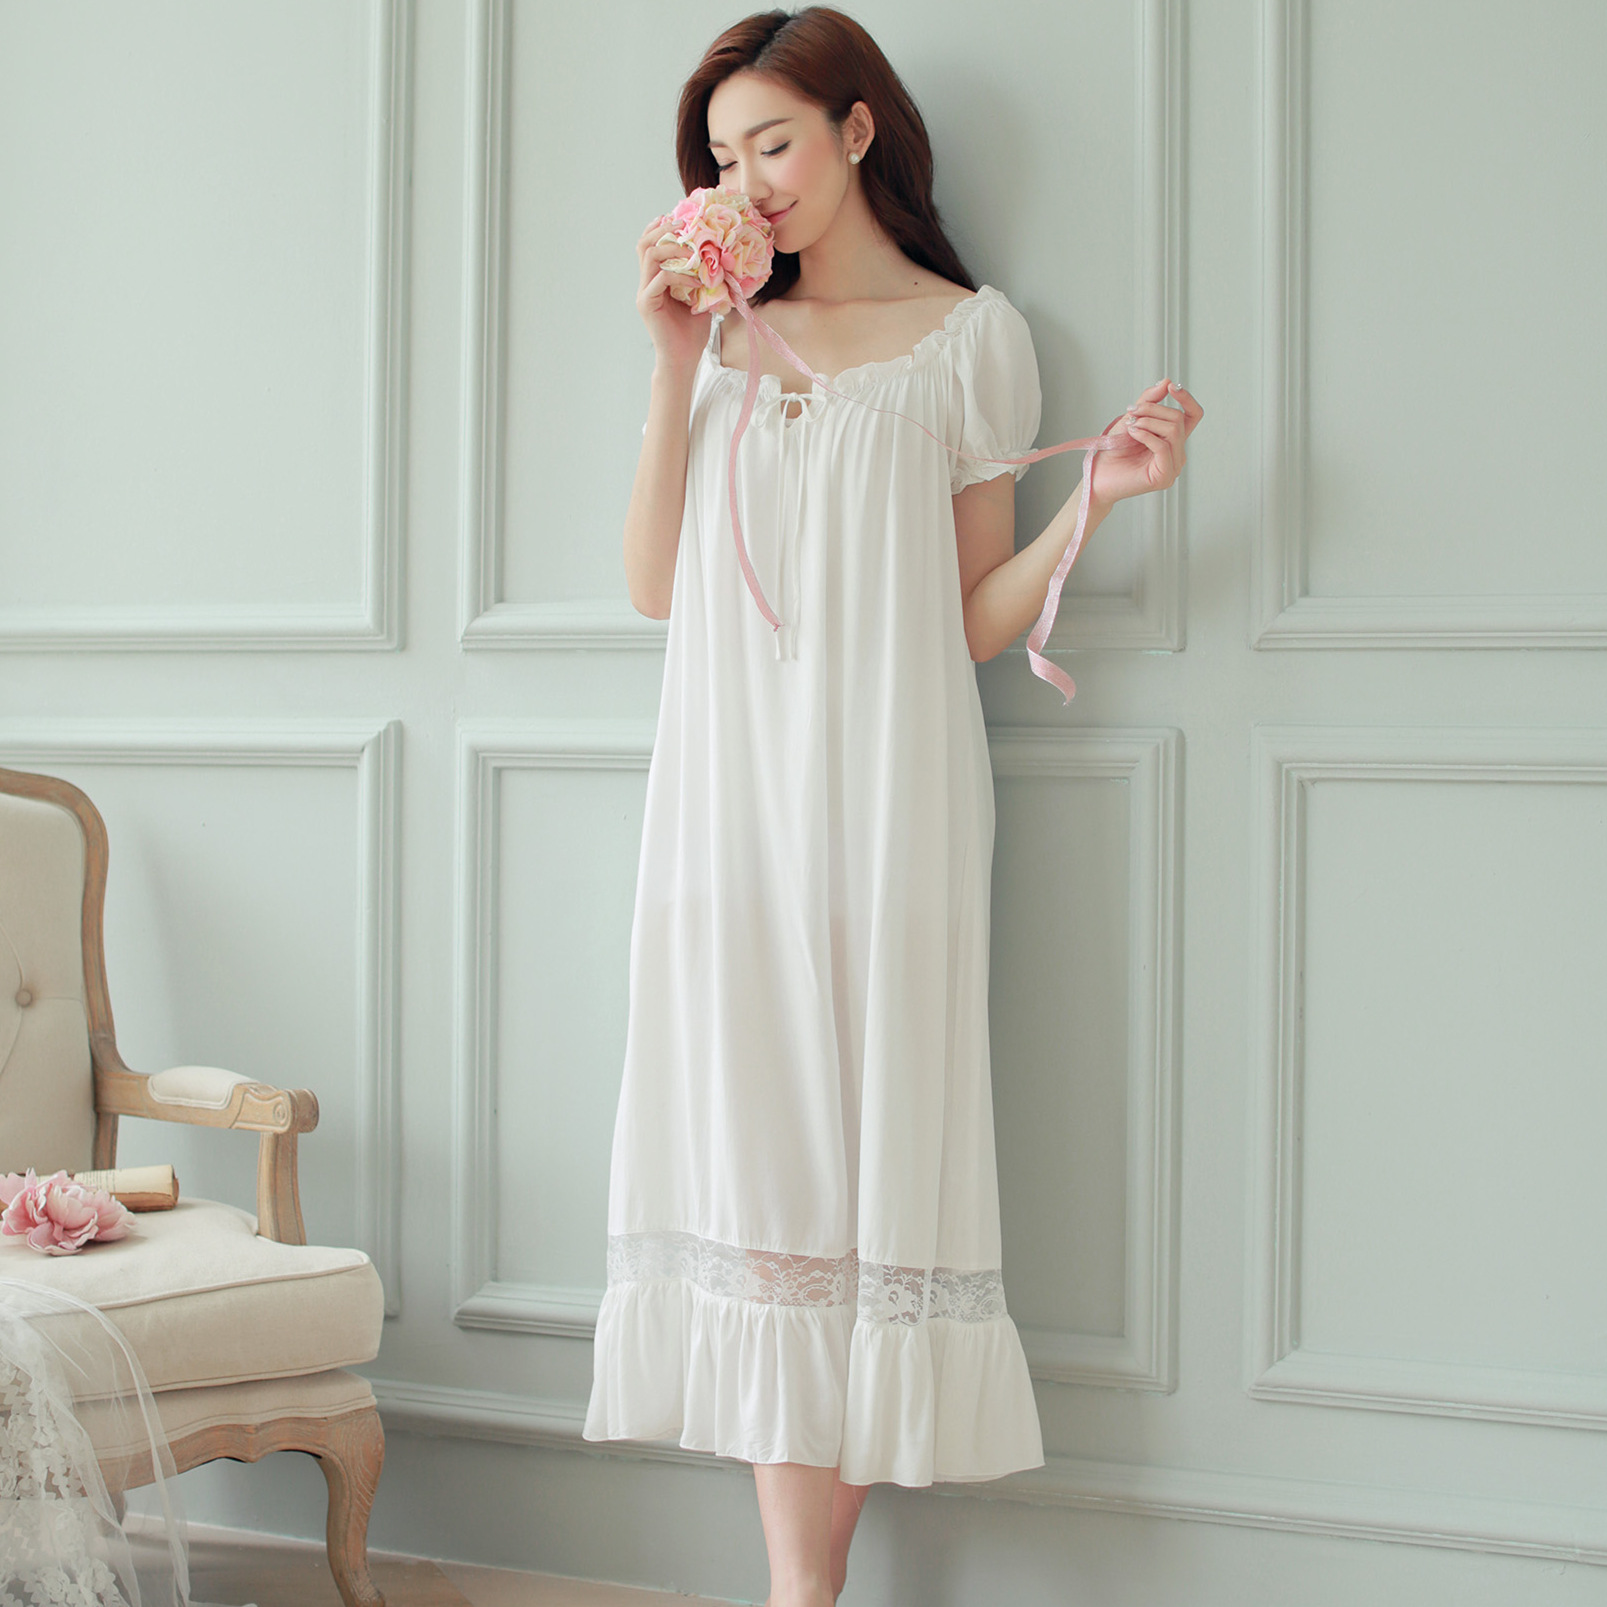 Womens nightgowns in hard-to-find and classic designs for every season. Browse our selection of flannel sleepwear and cotton nightgowns for women.